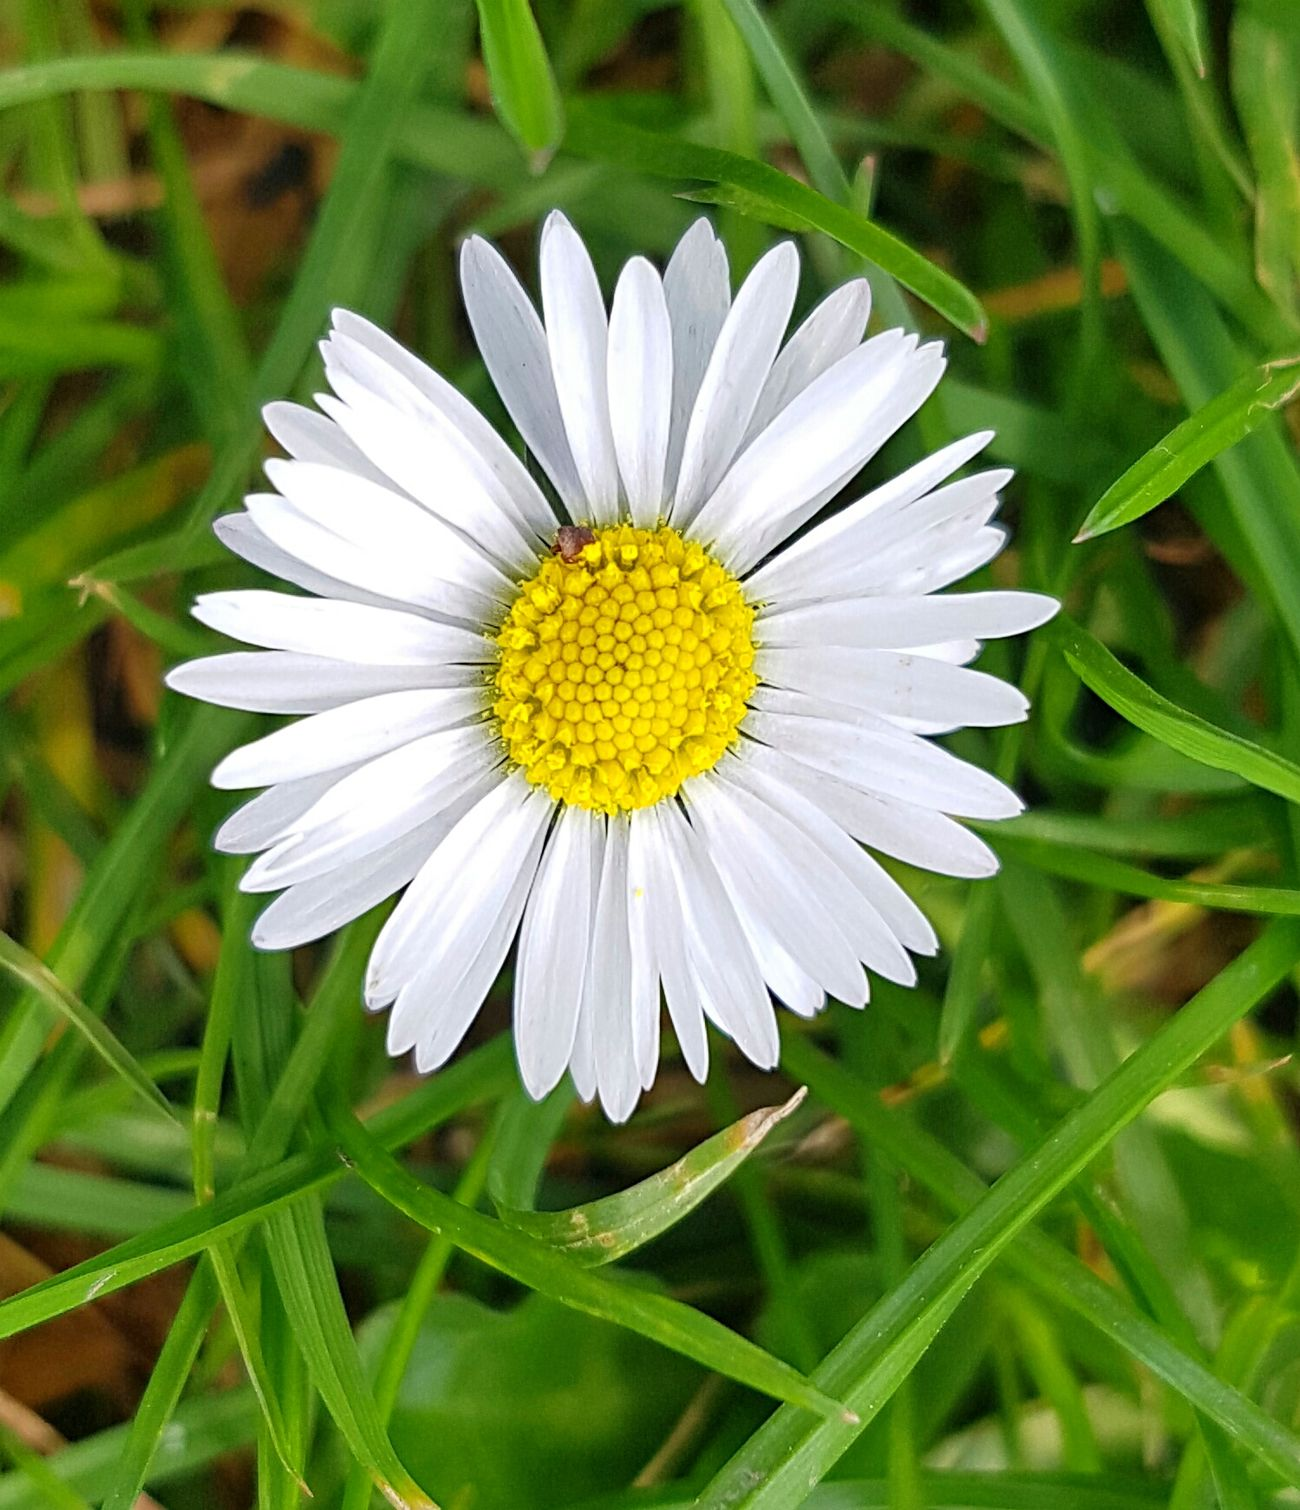 Flowers, Nature And Beauty Flowers Flower Collection Flower Photography Flower Head Daisy Flower Daisy 🌼 Daisy Close Up Colour Of Life Colours